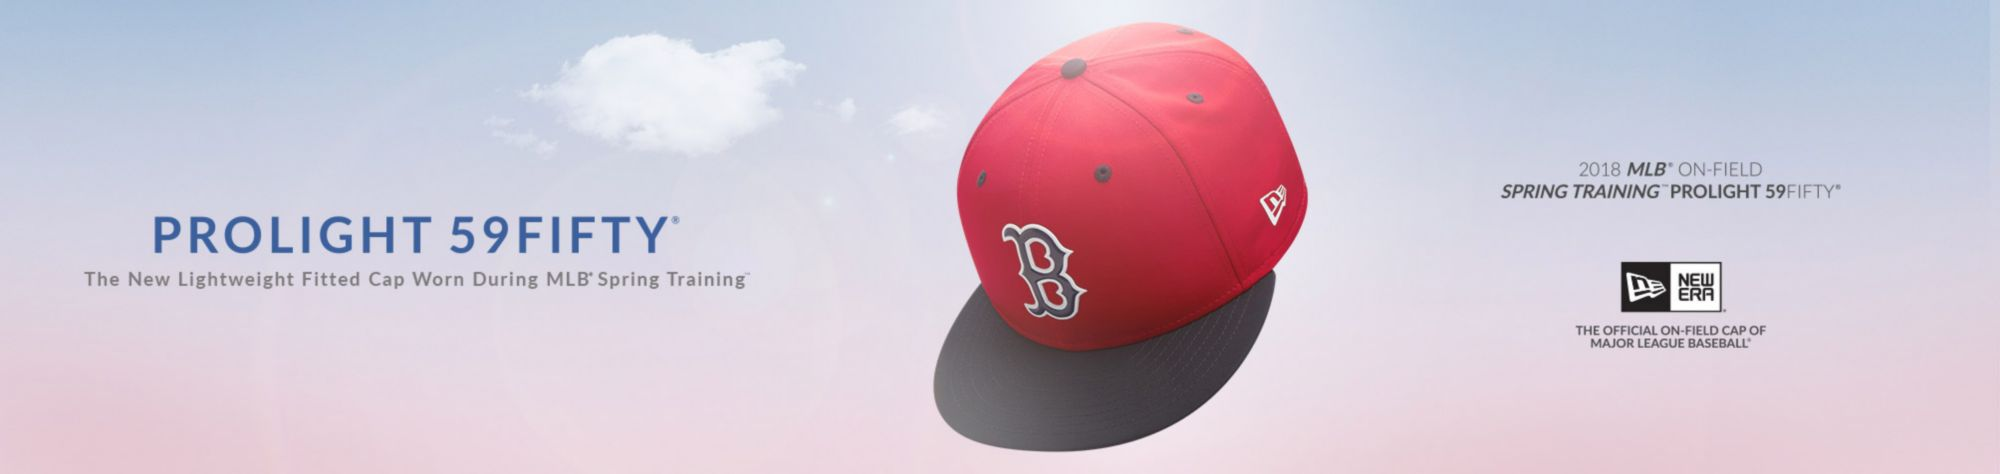 PROLIGHT 59FIFTY - The new lightweight fitted cap worn during MLB spring training - Boston Red Sox - Shop Now